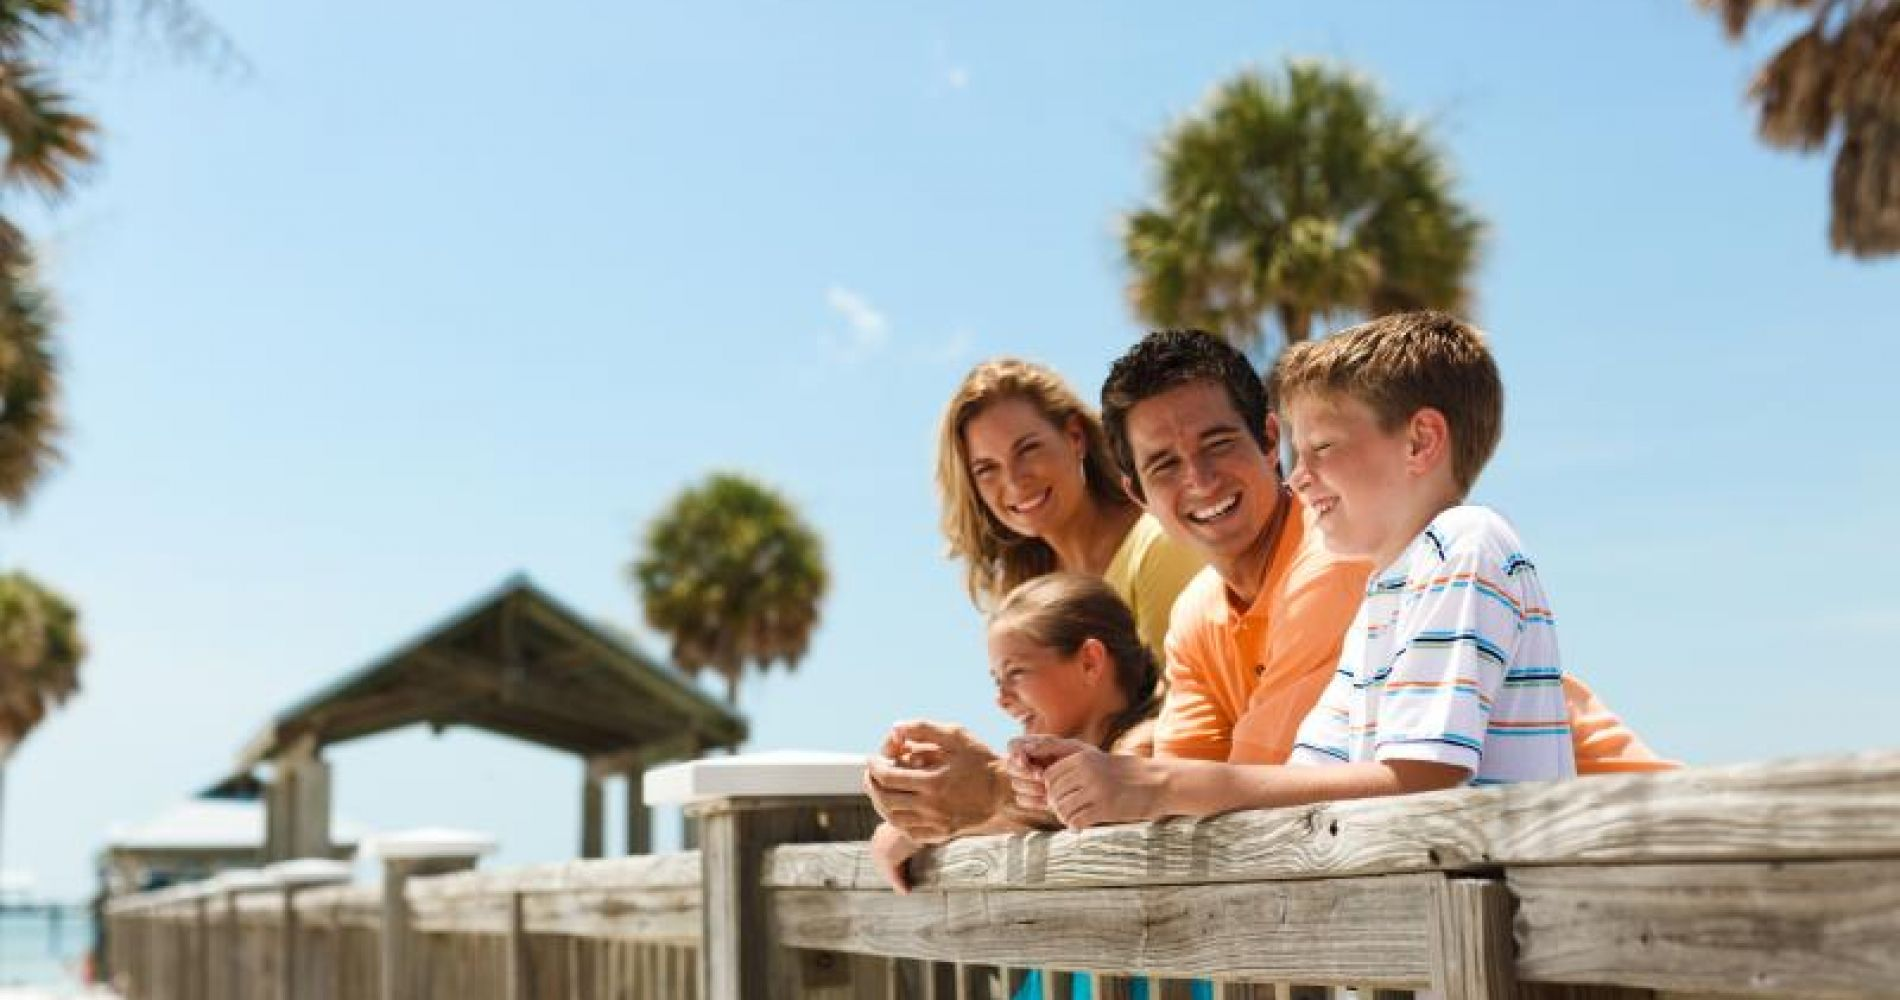 The Dolphin Encounter Boat Ride & Lunch from Orlando